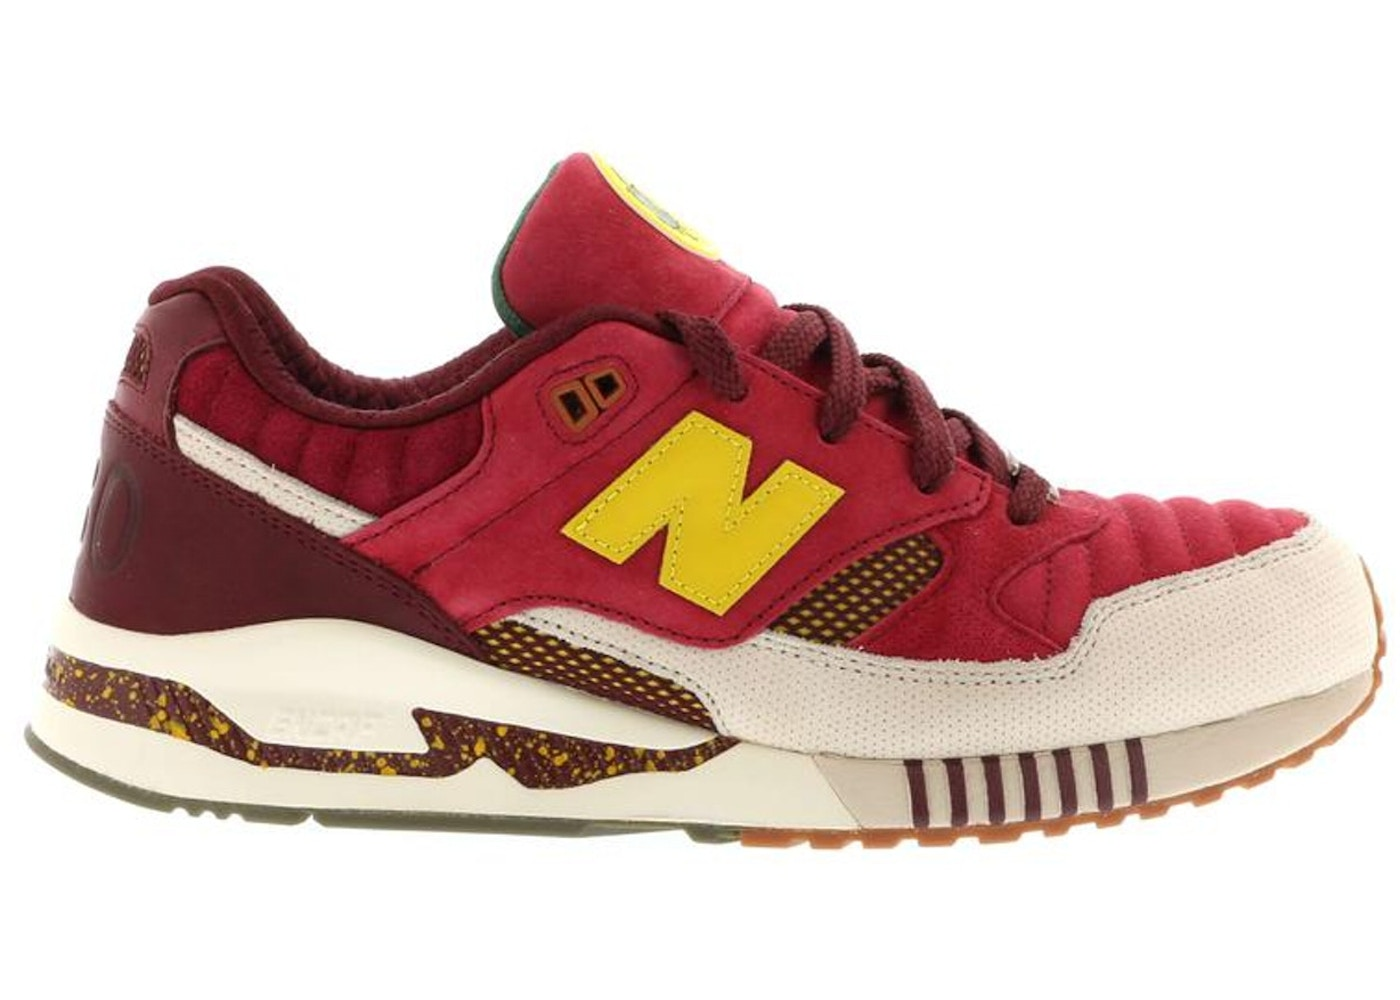 lowest price 0613f 3fb66 New Balance 530 Ronnie Fieg